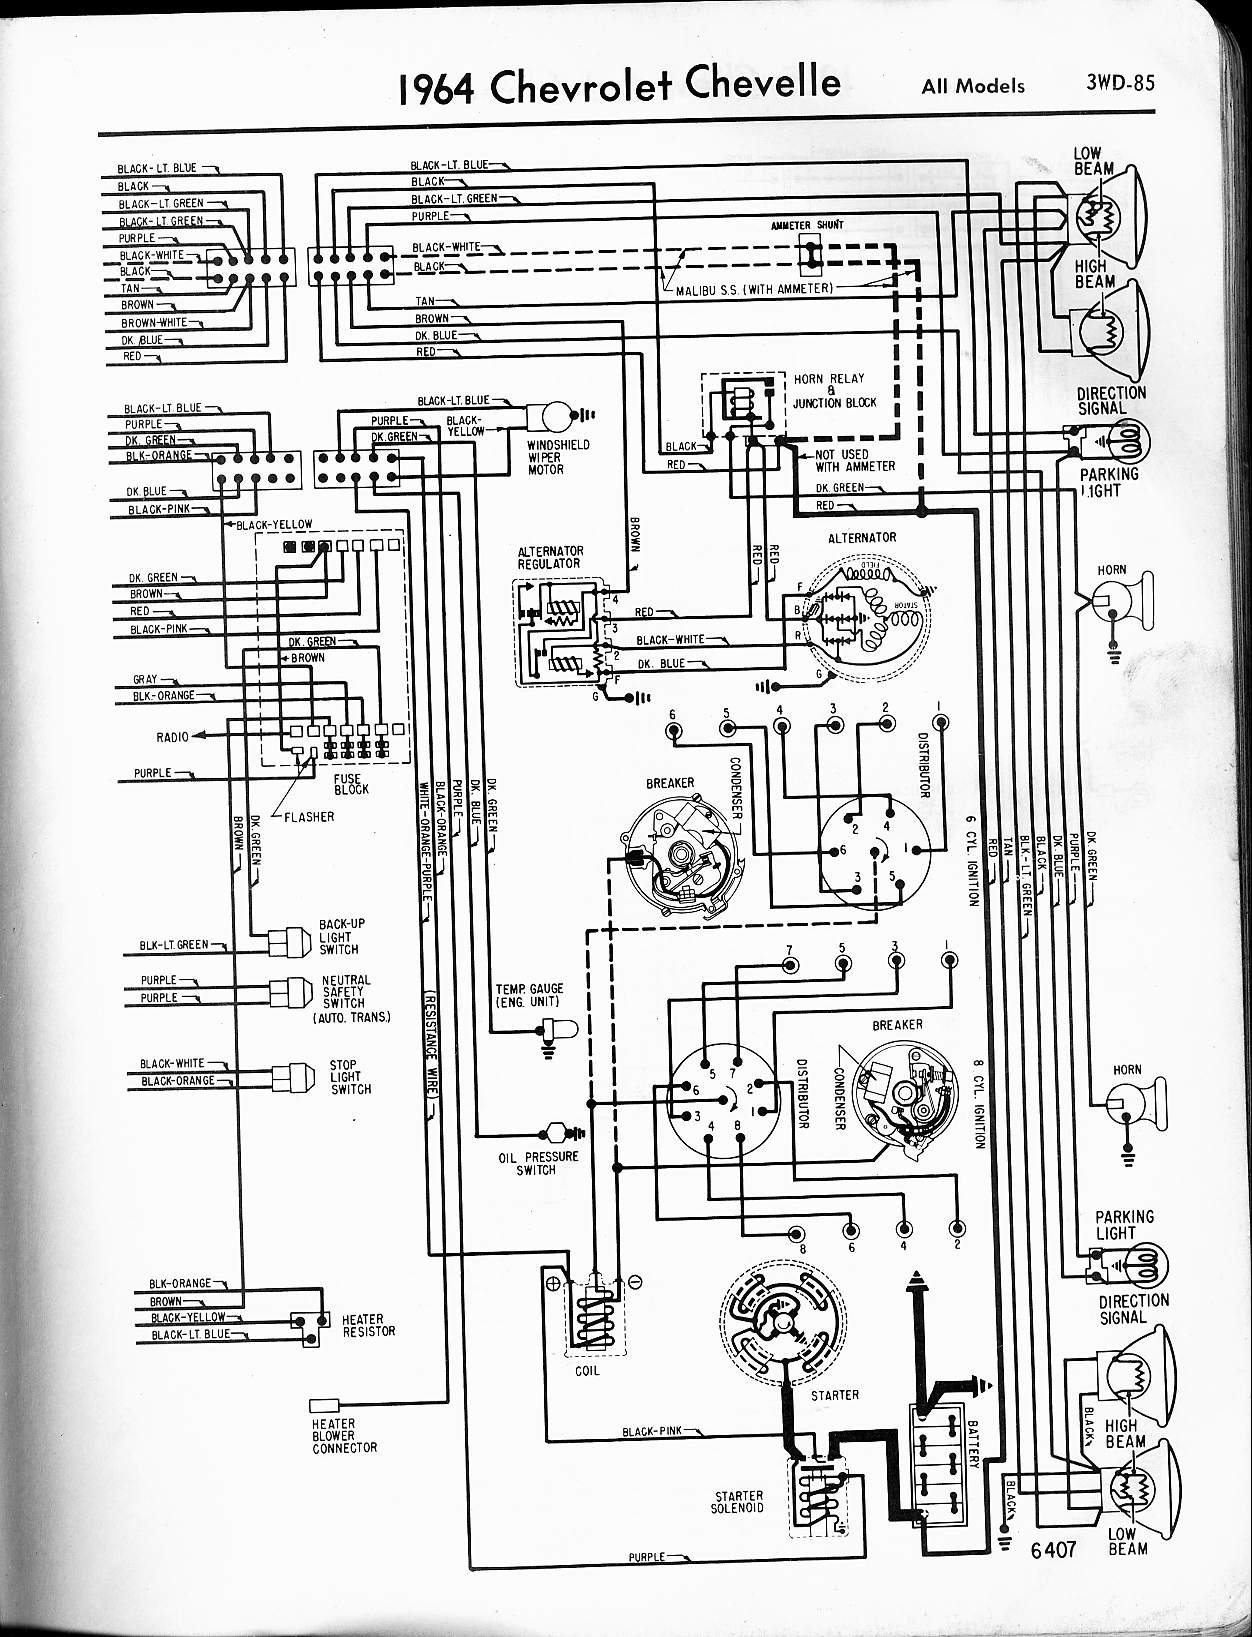 1968 chevy impala wiring diagram data wiring schema 1964 impala tail light wiring diagram 1968 impala wiring diagram lights simple wiring diagram cruisecontrol 2003 impala electrical diagram 1968 chevy impala wiring diagram